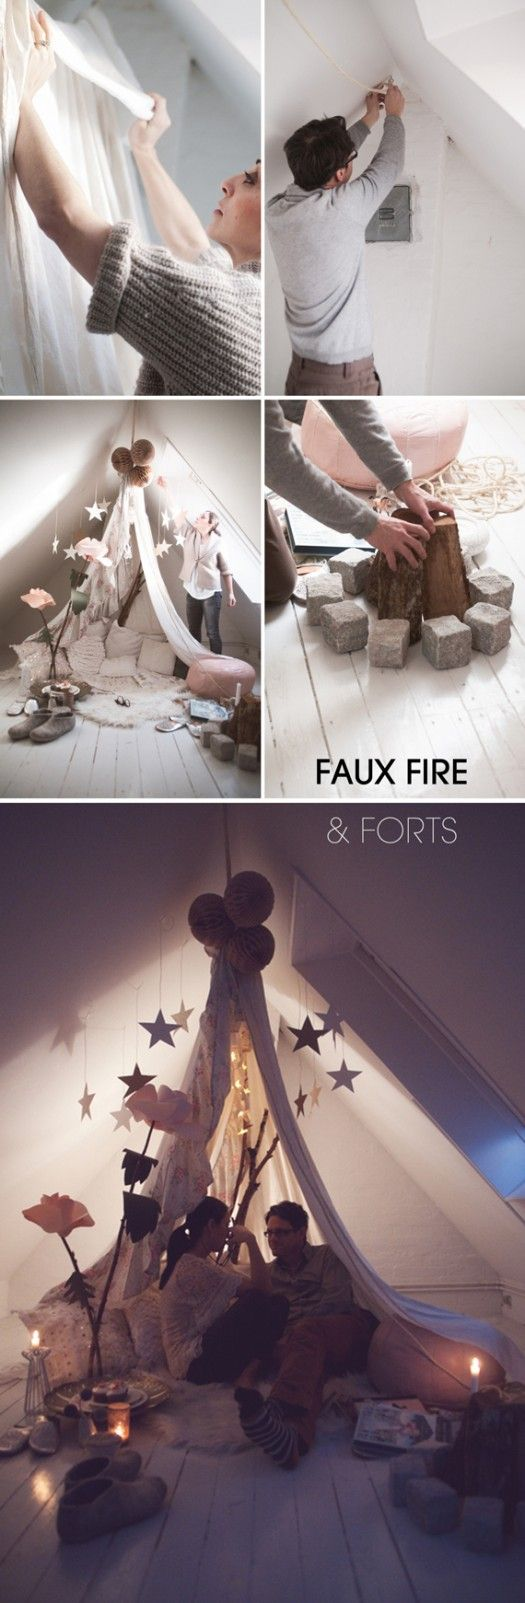 faux-fire-and-forts